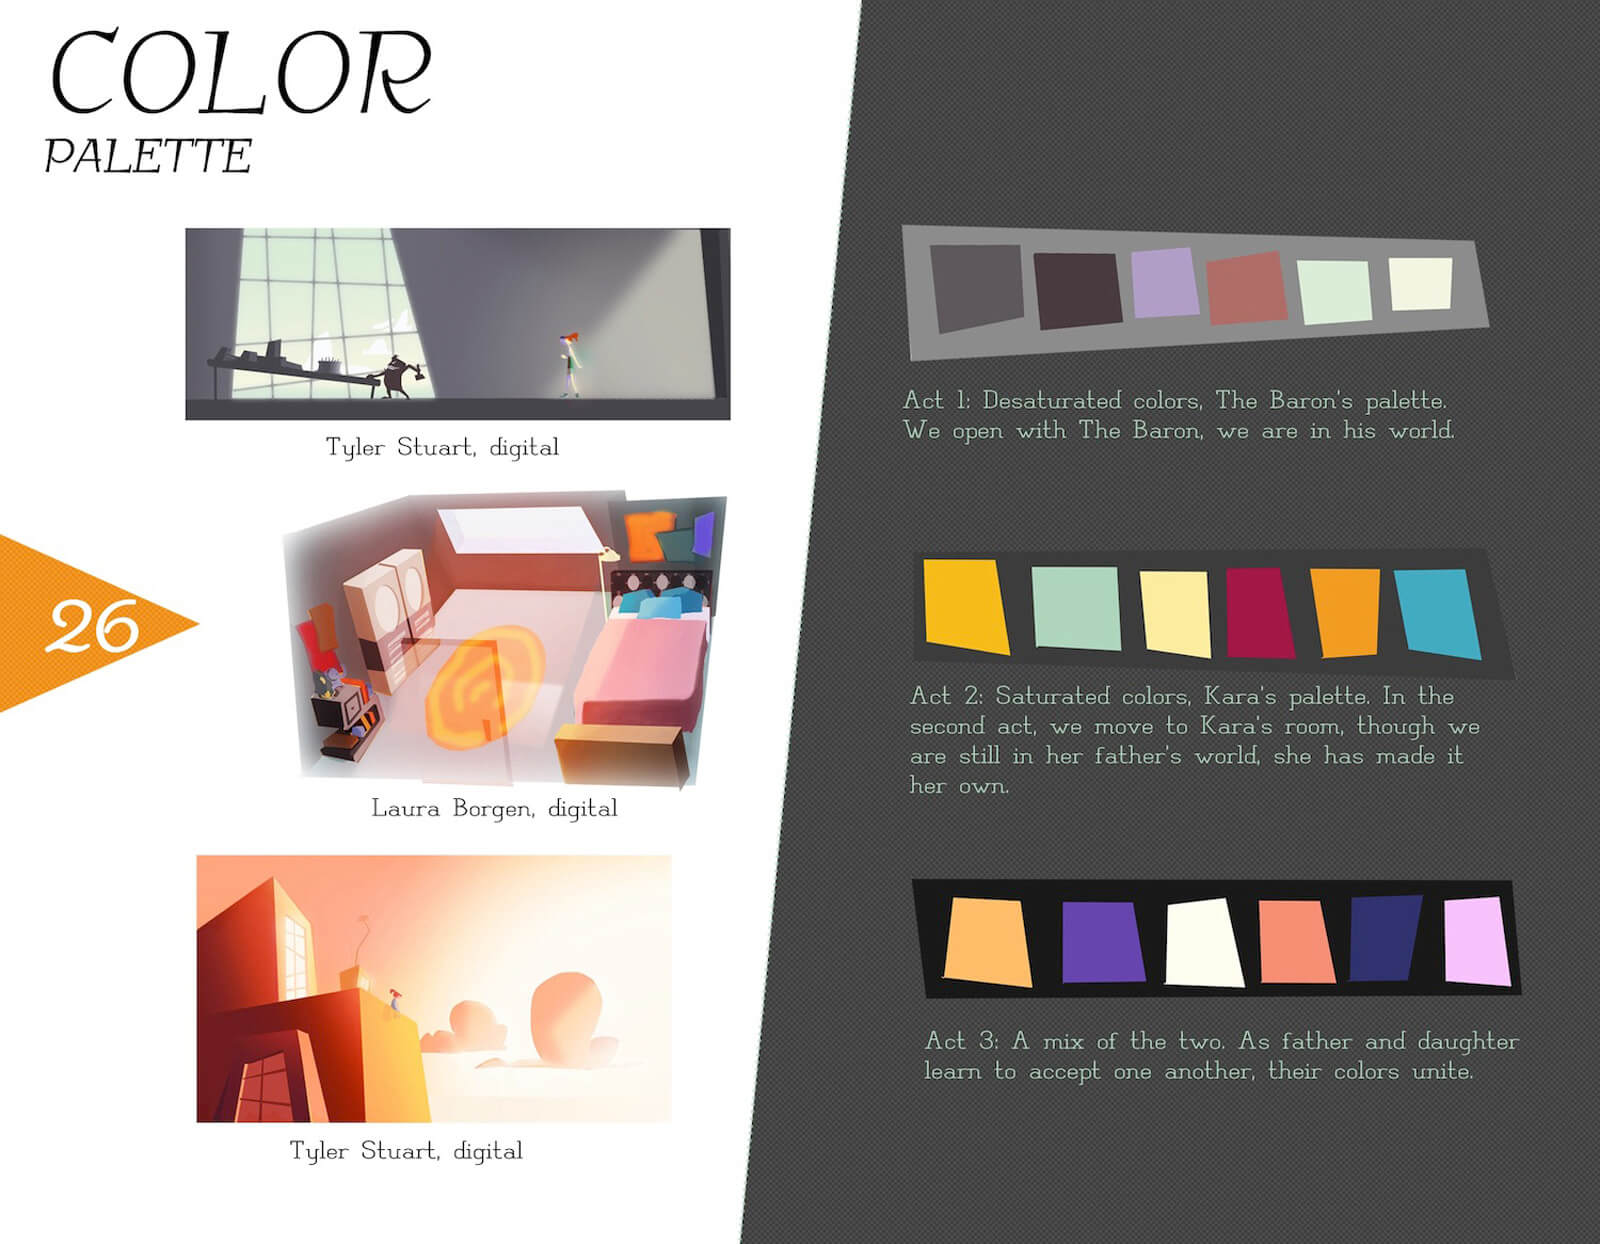 Color palette slide for the film Super Secret, including desaturated and saturated colors from different scenes